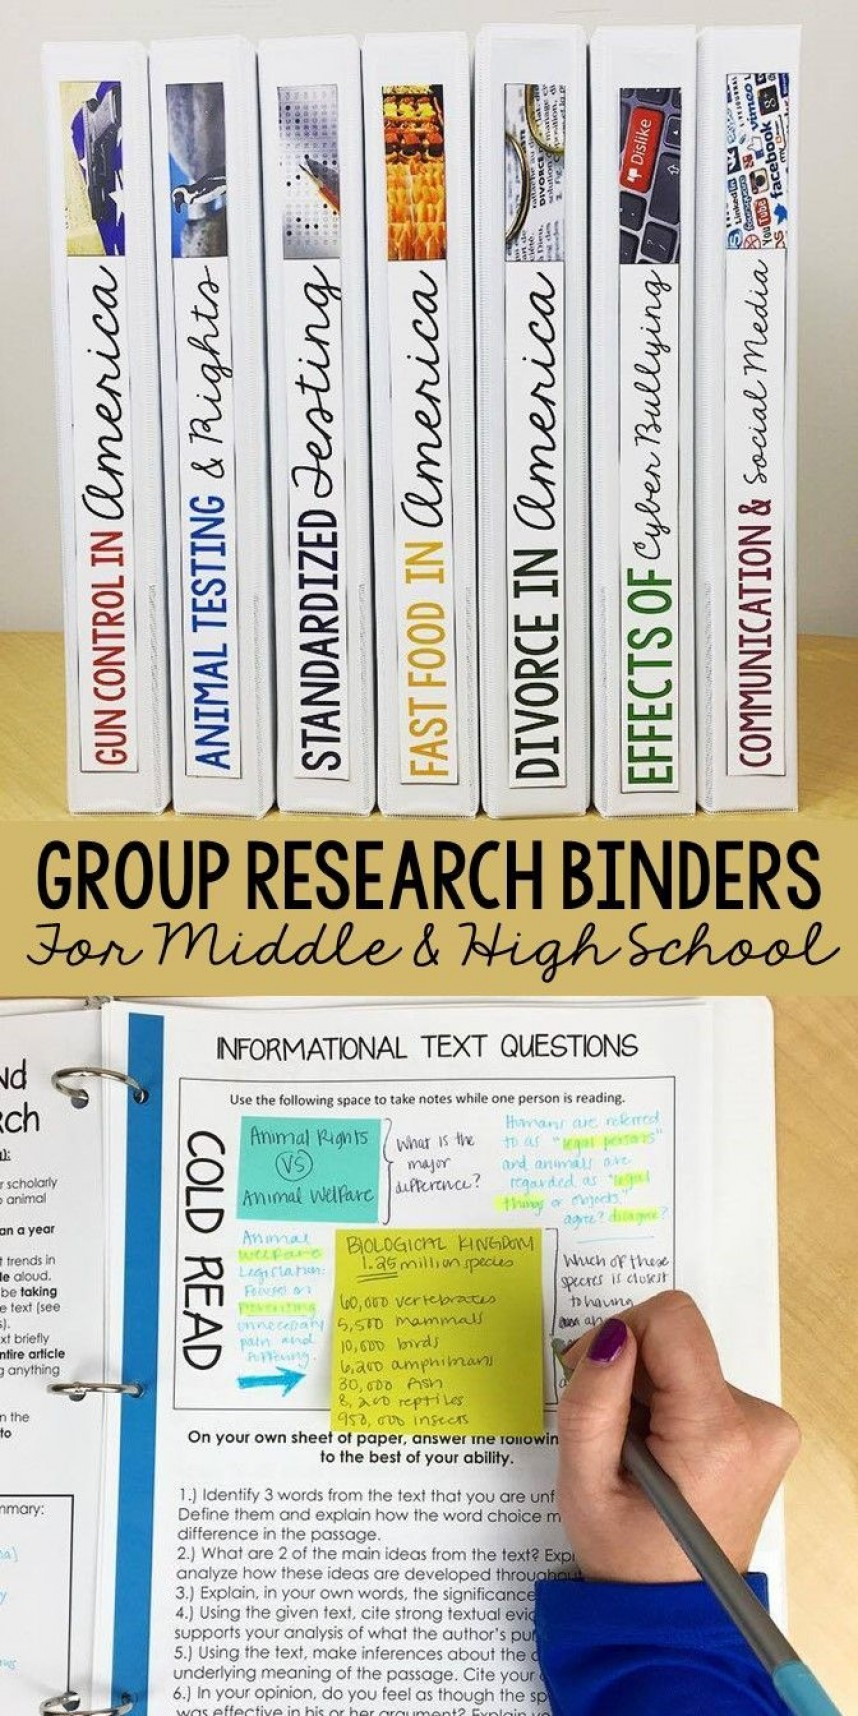 024 Research Paper Writing Binder Teaching Middle School Unusual Ideas Science For Titles High Students